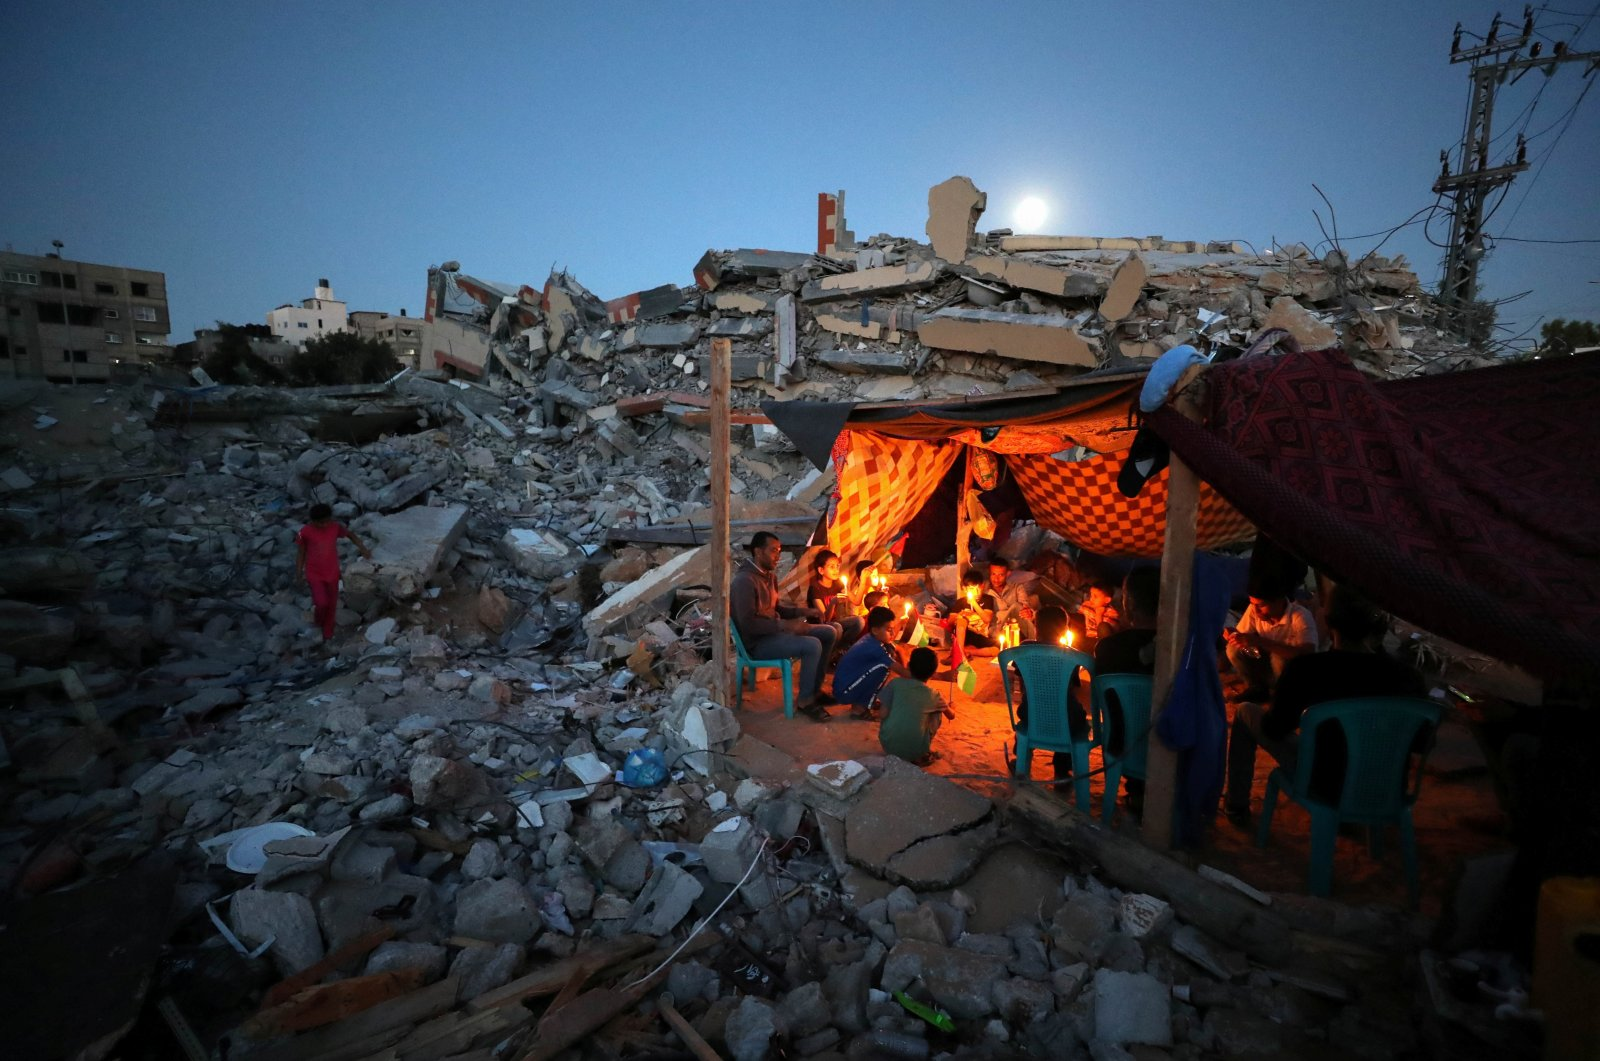 Palestinians from Zawaraa family hold candles as they sit in a makeshift tent amid the rubble of their houses, which were destroyed by Israeli air strikes during the Israeli-Palestinian fighting, Gaza, May 25, 2021. (Reuters Photo)